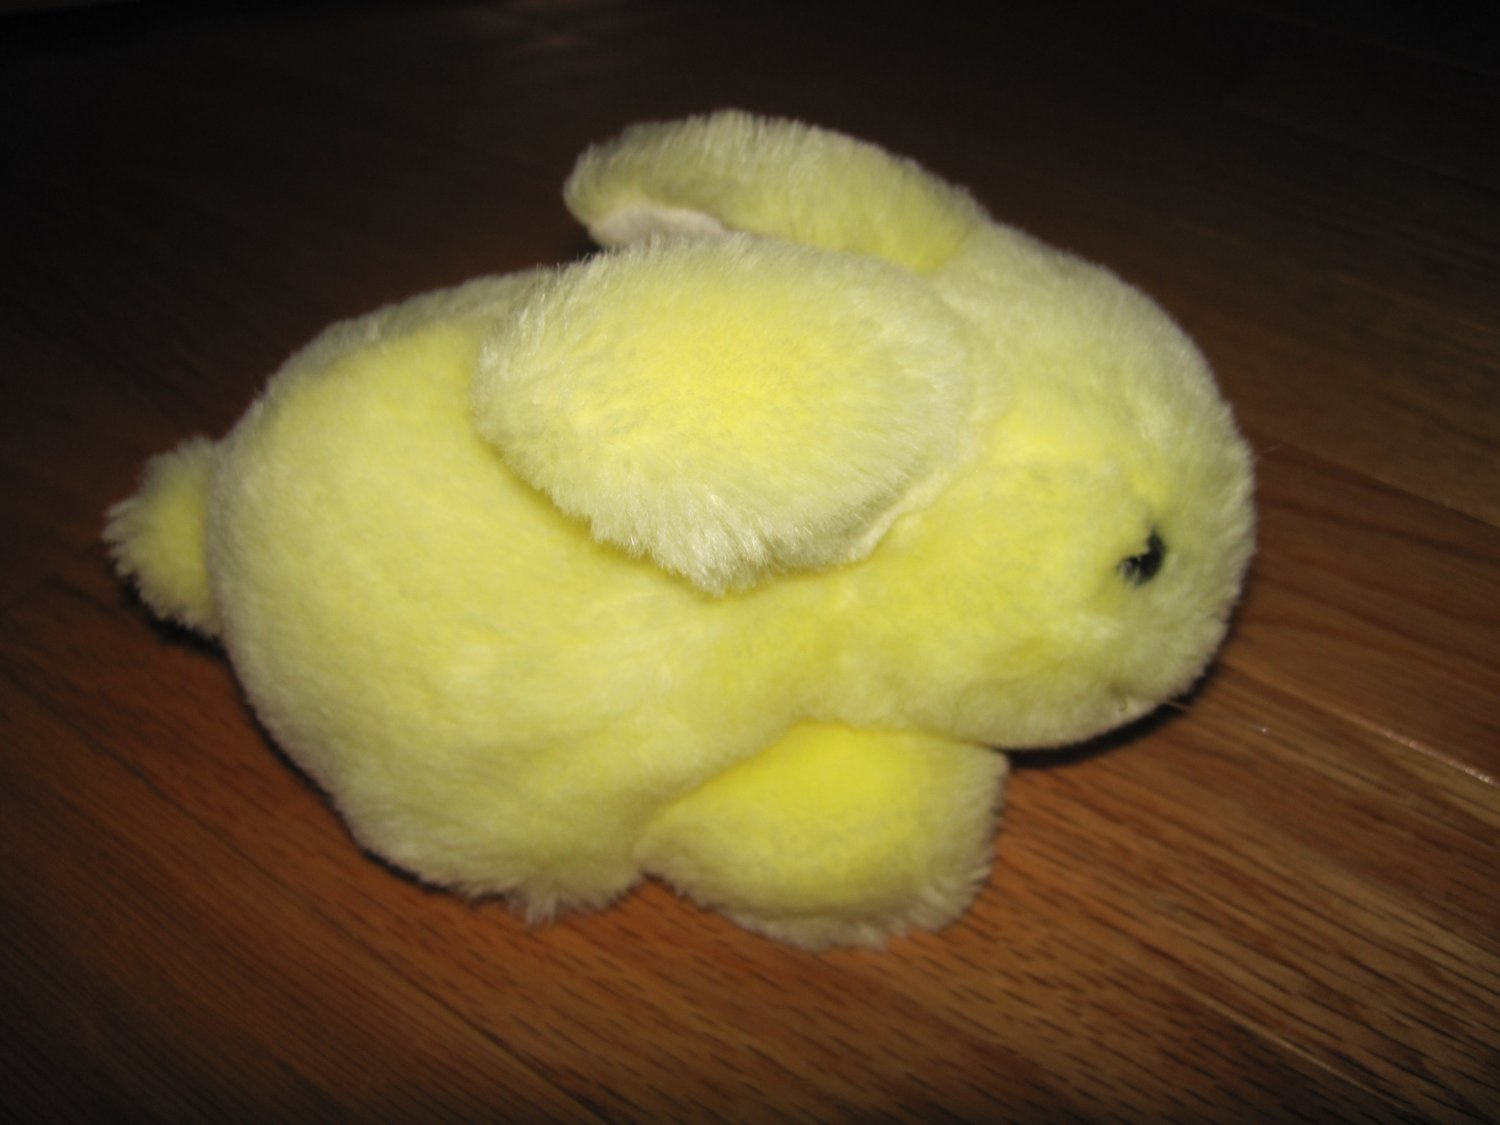 Caltoy Soft Sheen Wee Bunny Rabbit Plush Yellow Toy